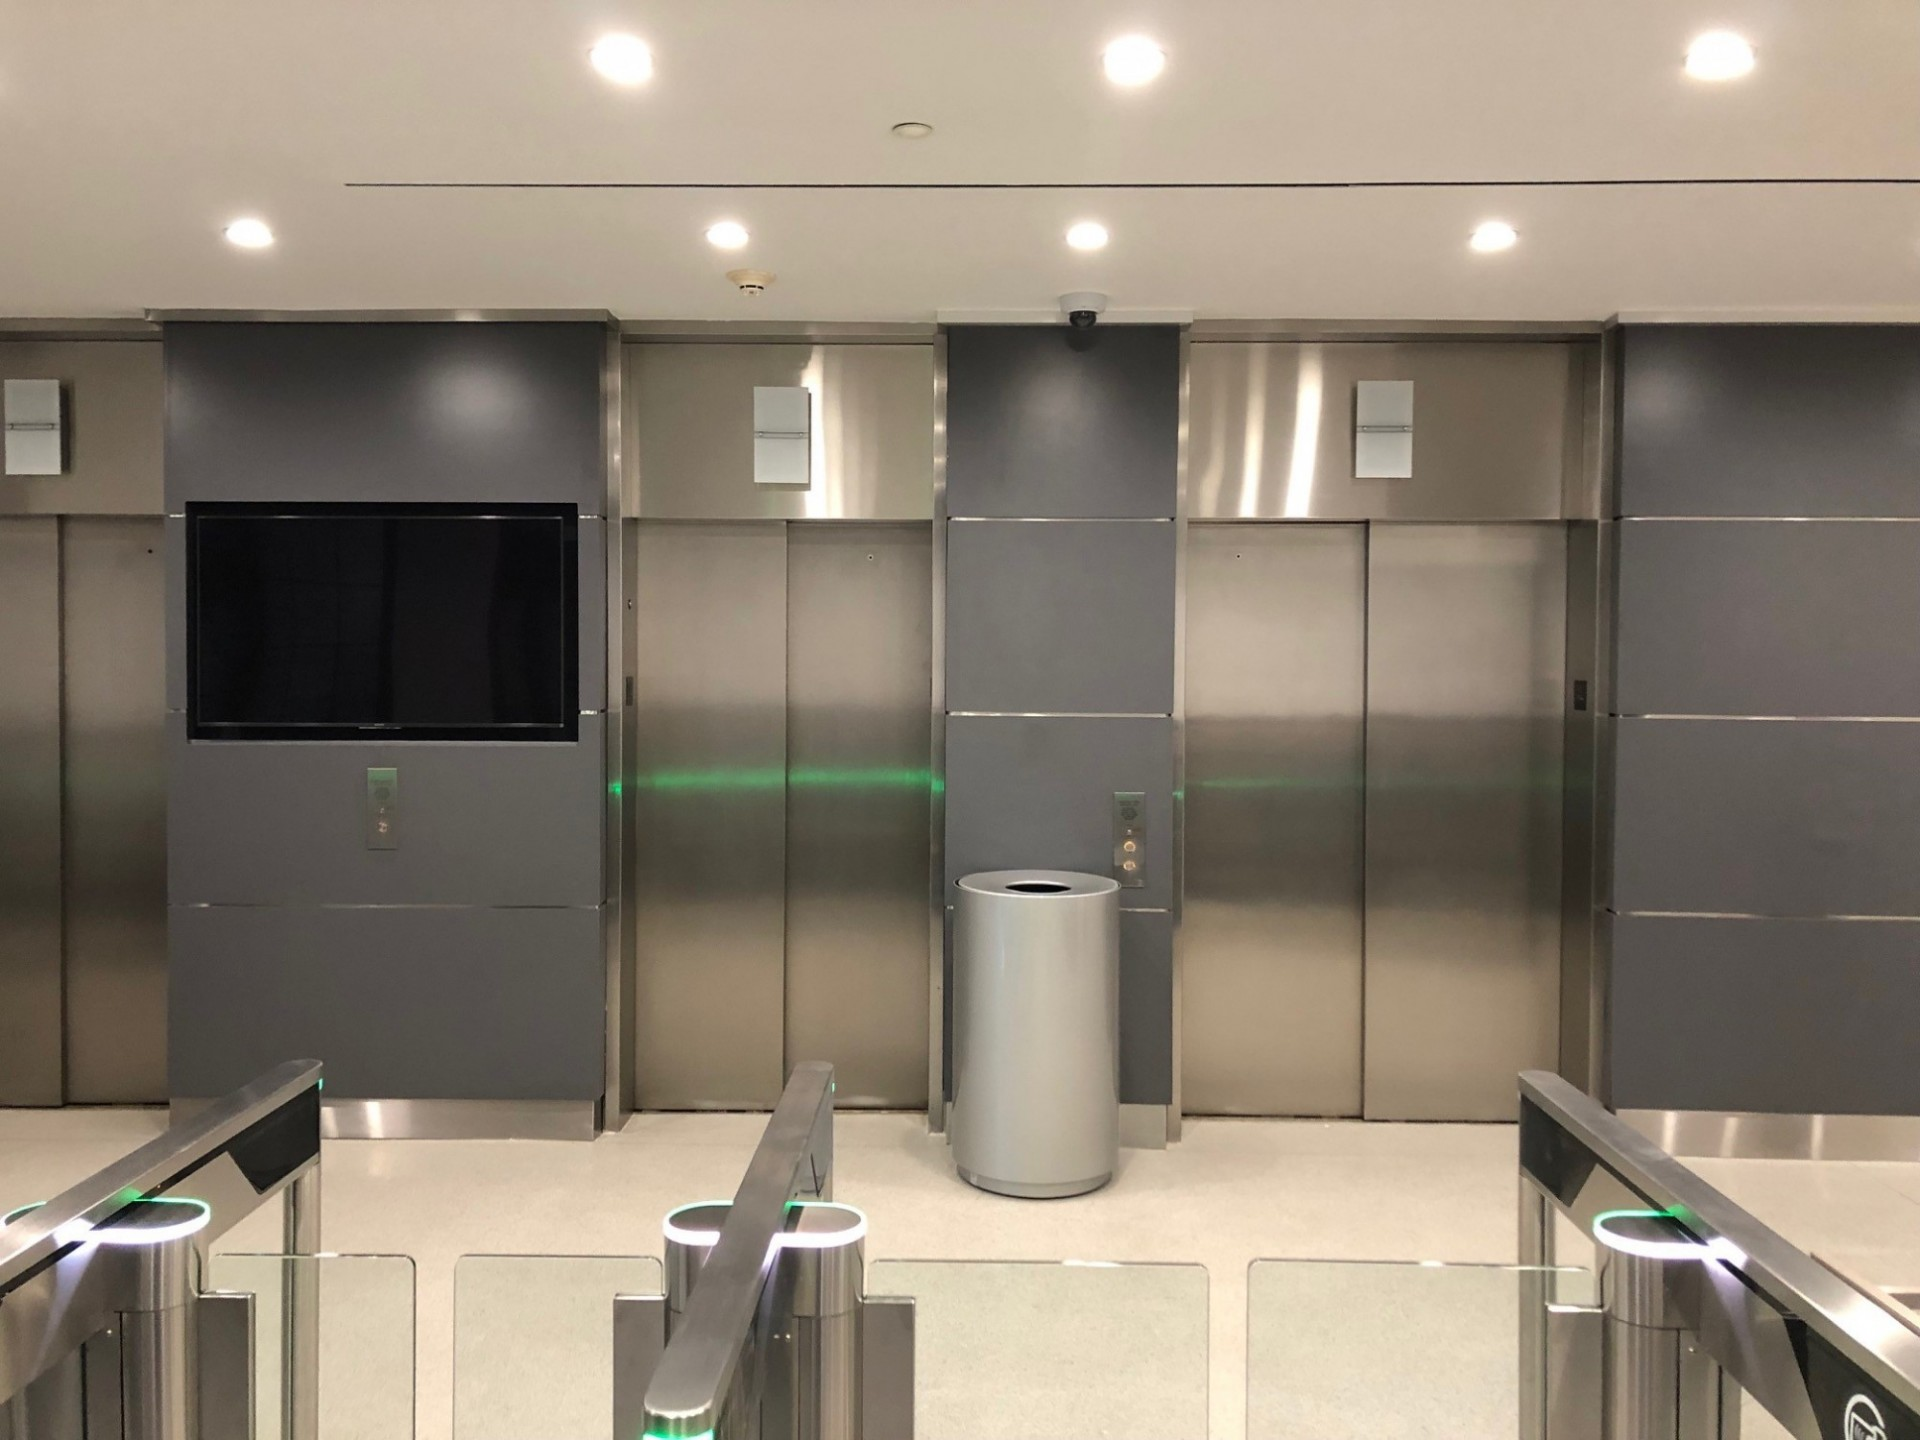 A bank of elevators behind turnstiles